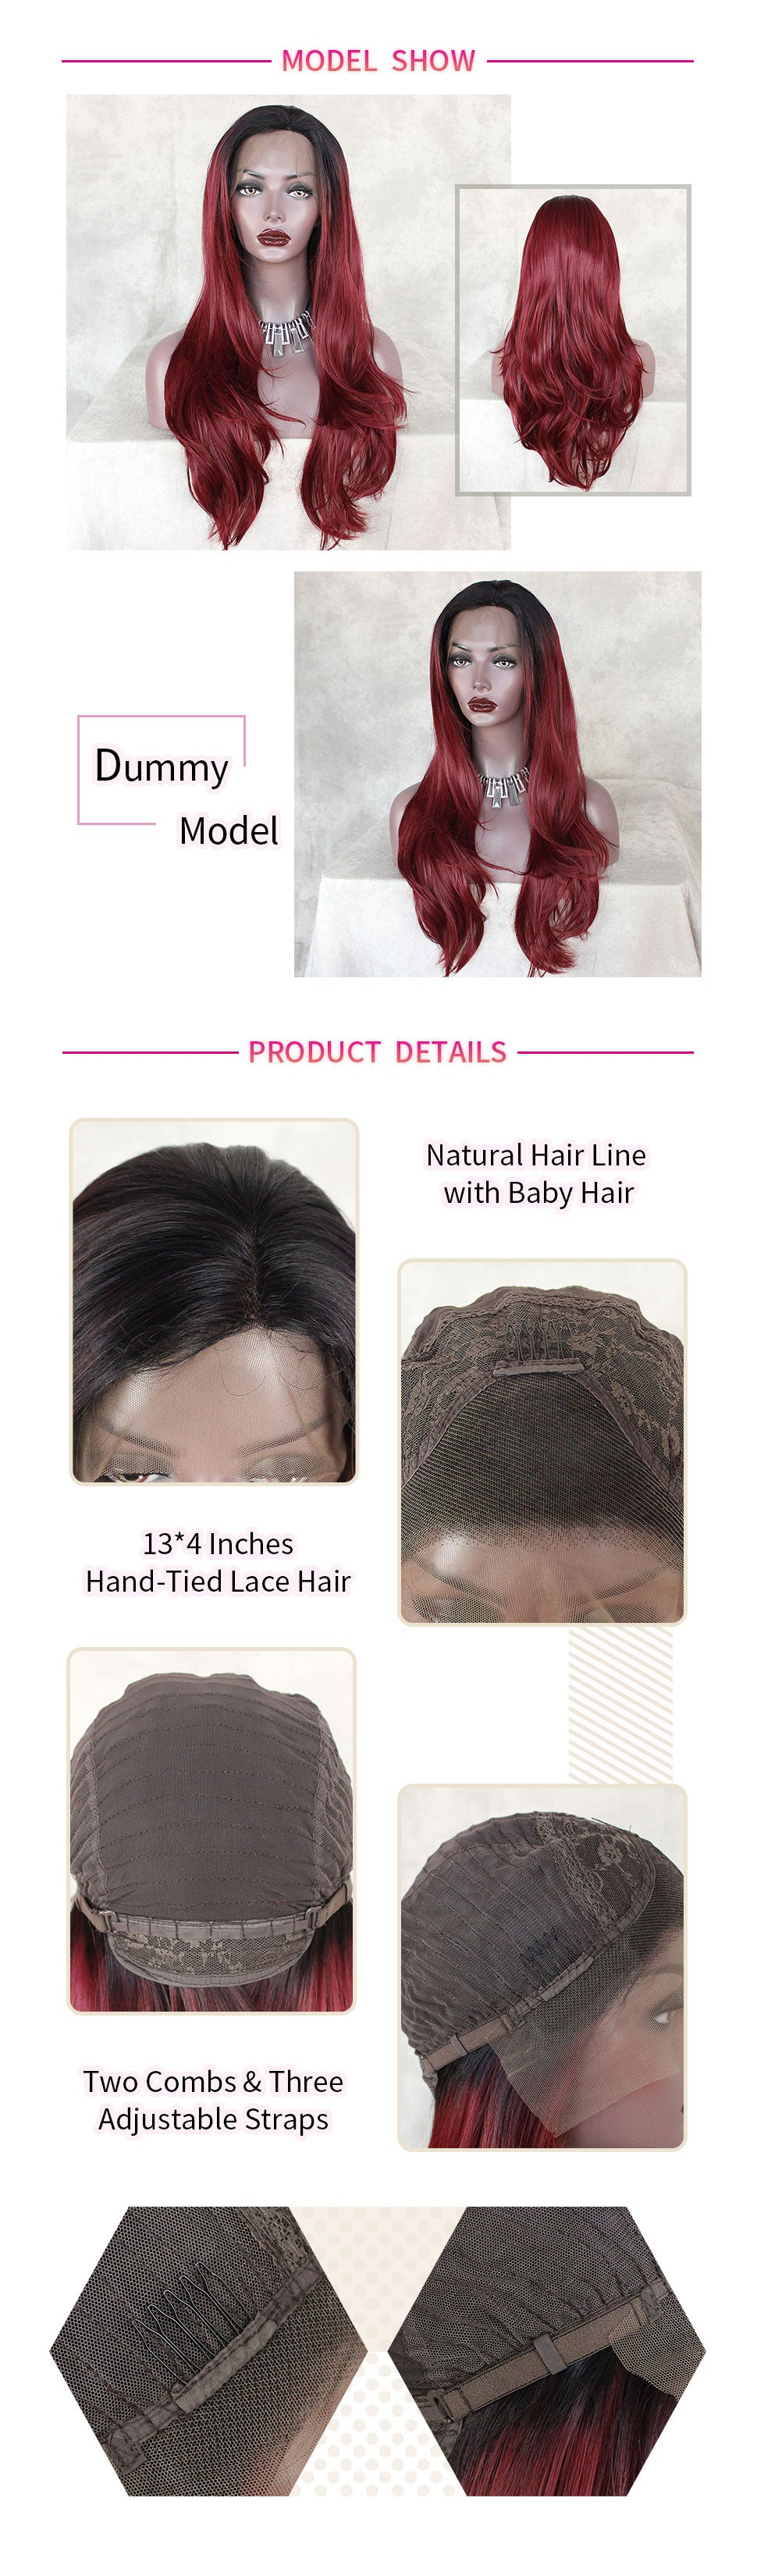 ReadyWig Red Color Natural Straight Synthetic Lace Front Wig 22 Inches-hair details